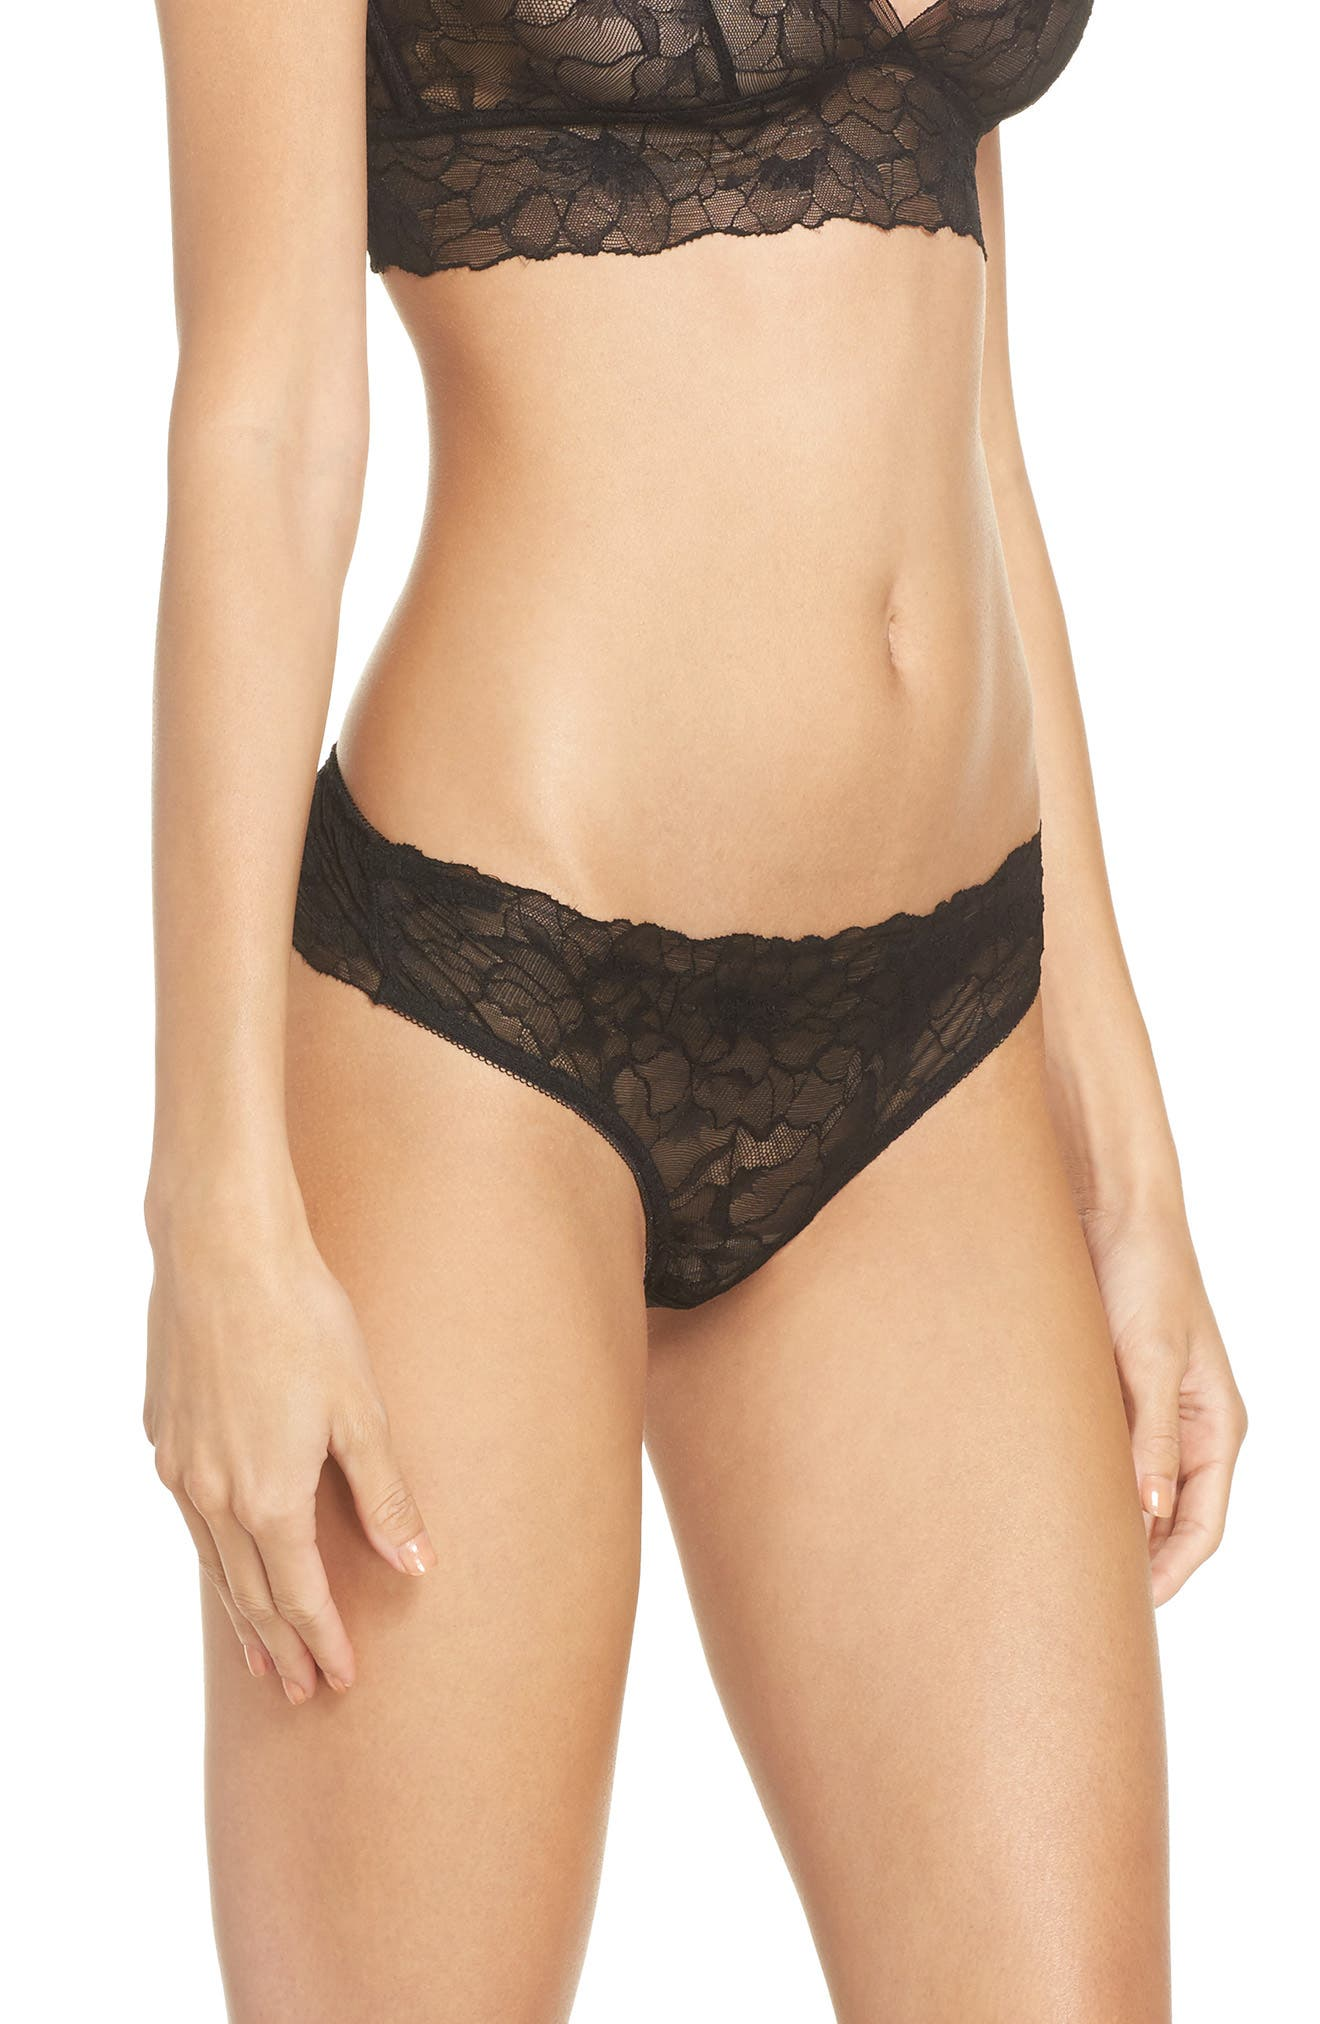 All Lace Glamour Lace Thong,                             Alternate thumbnail 3, color,                             BLACK